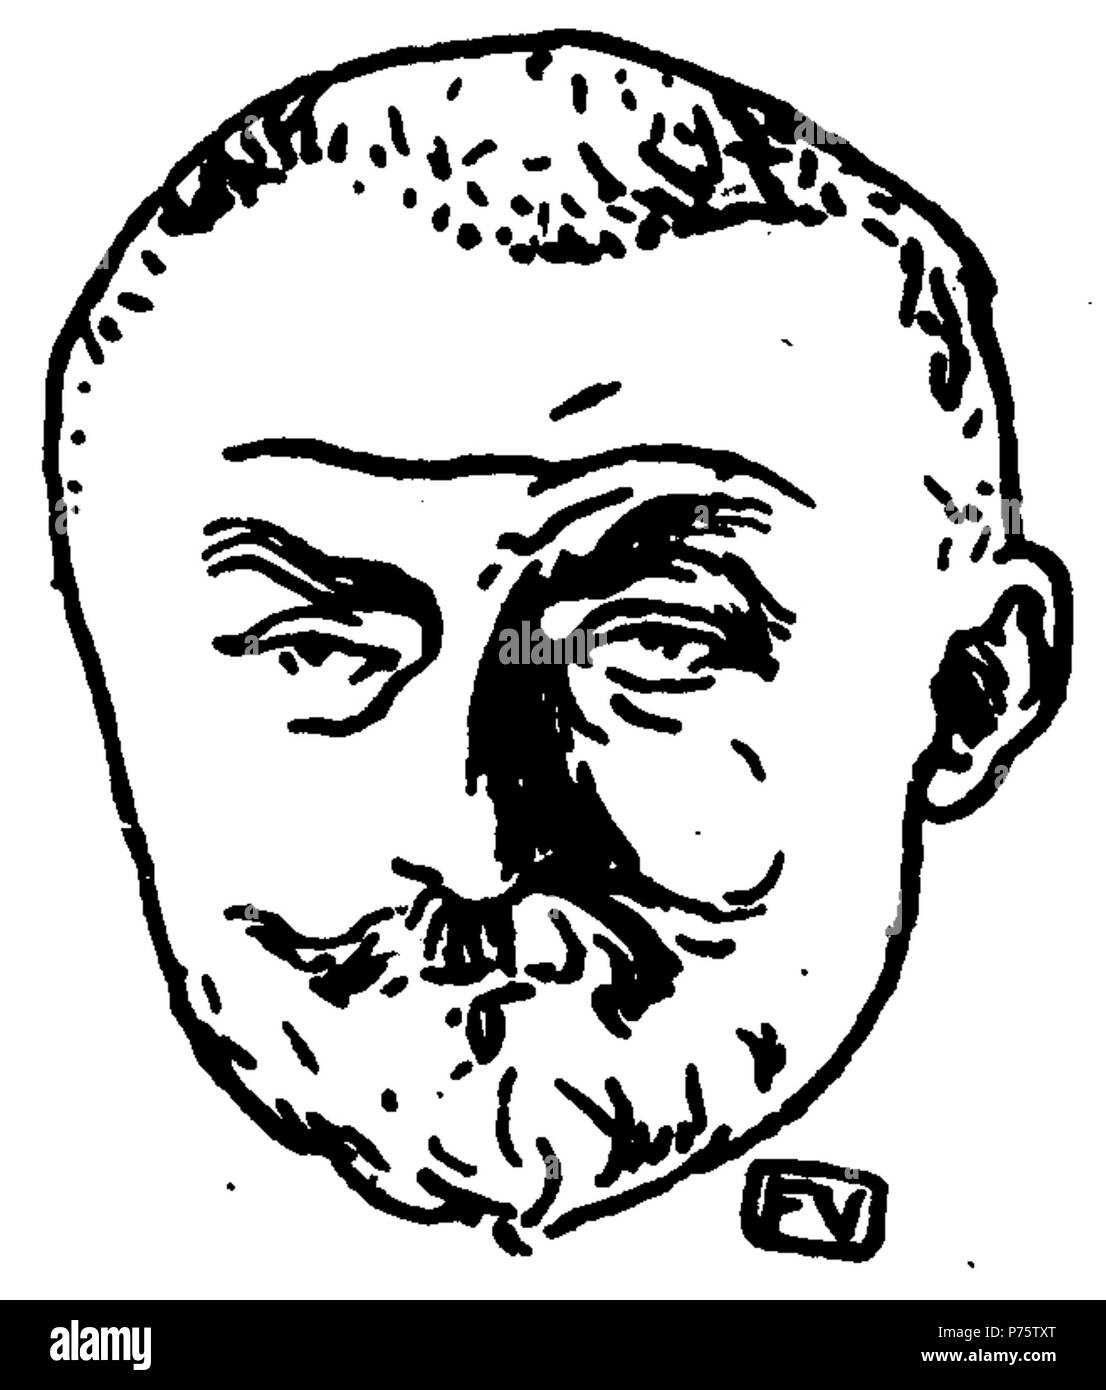 Portrait of French writer Joris-Karl Huysmans (1848-1907) from Le Livre des masques (vol. II, 1898) by Remy de Gourmont (1858-1916) . circa 1898 145 J.-K. Huysmans by Vallotton Stock Photo